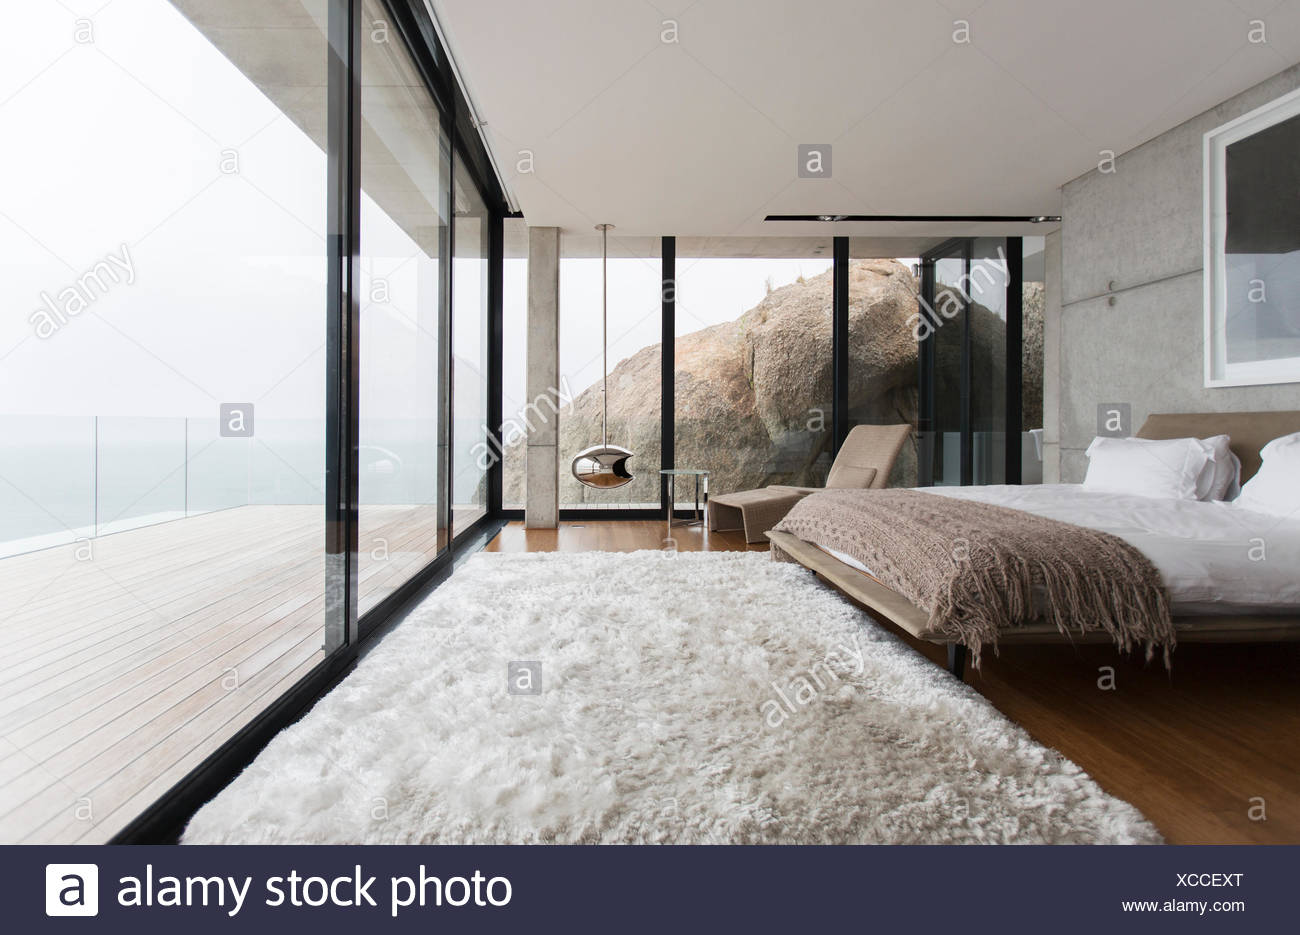 Shag rug and glass walls in modern bedroom - Stock Image